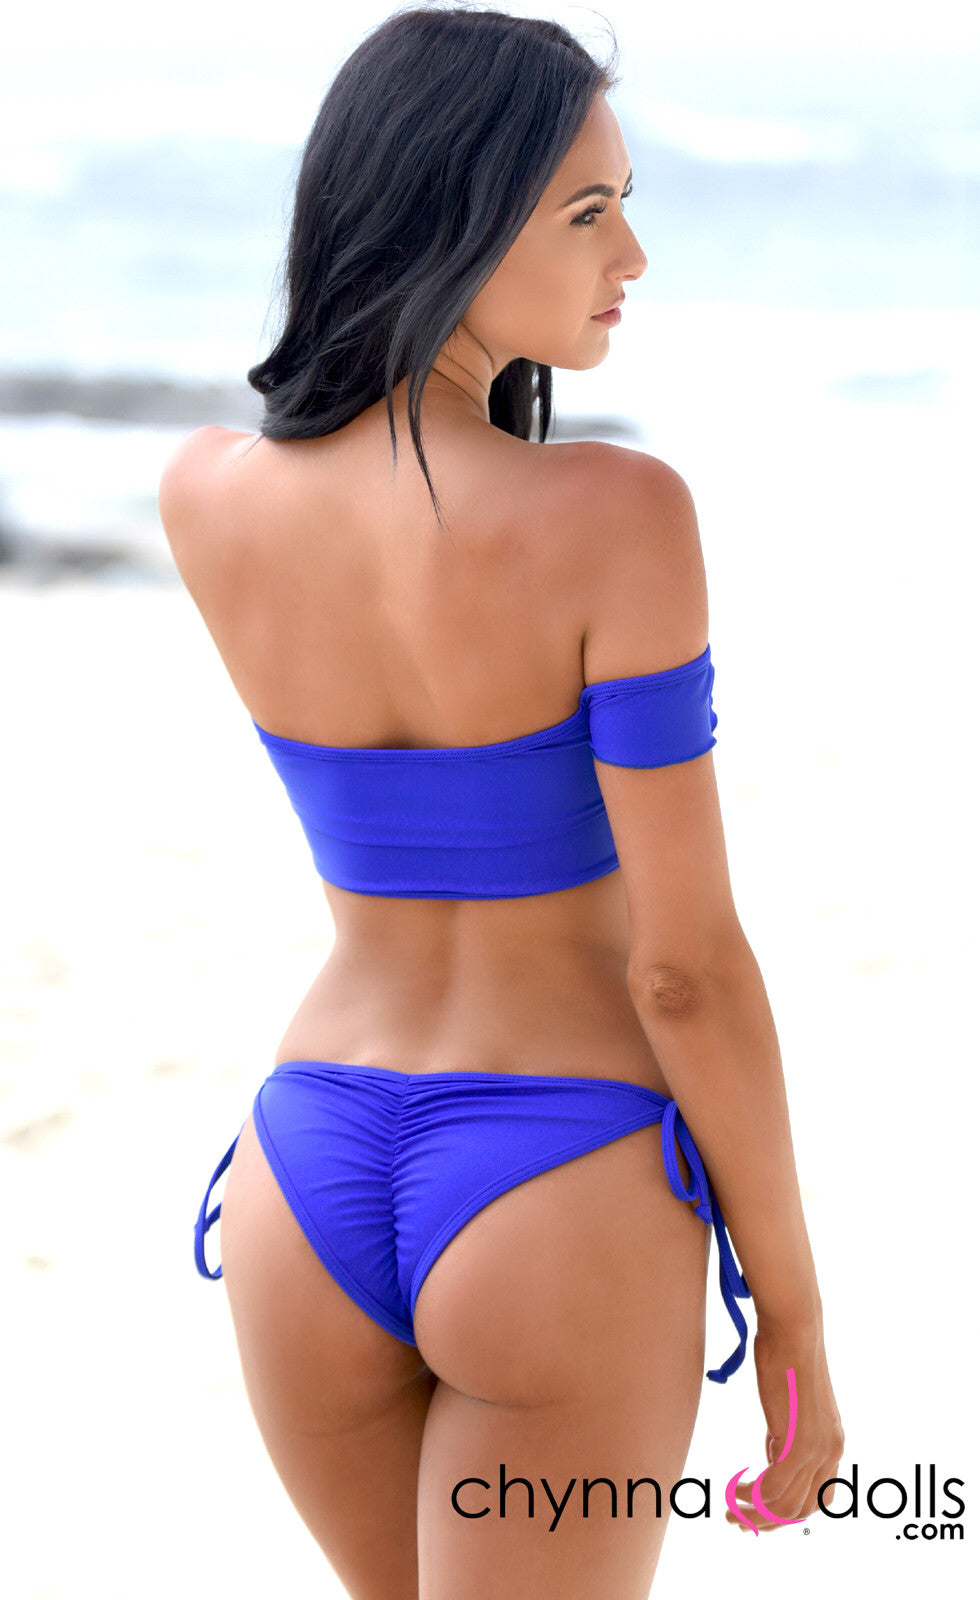 Savannah: Off the Shoulder Lace Up Top and String Bottom in Royal Blue - Chynna Dolls Swimwear